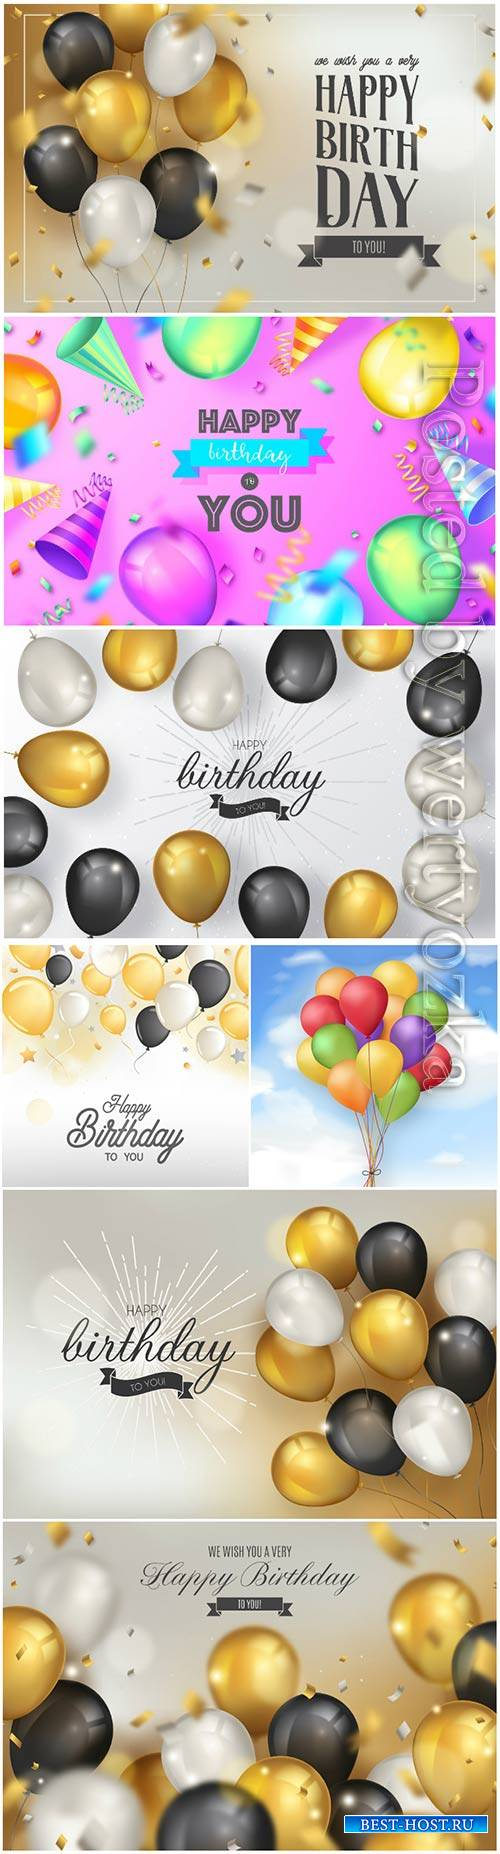 Elegant birthday vector background with realistic balloons